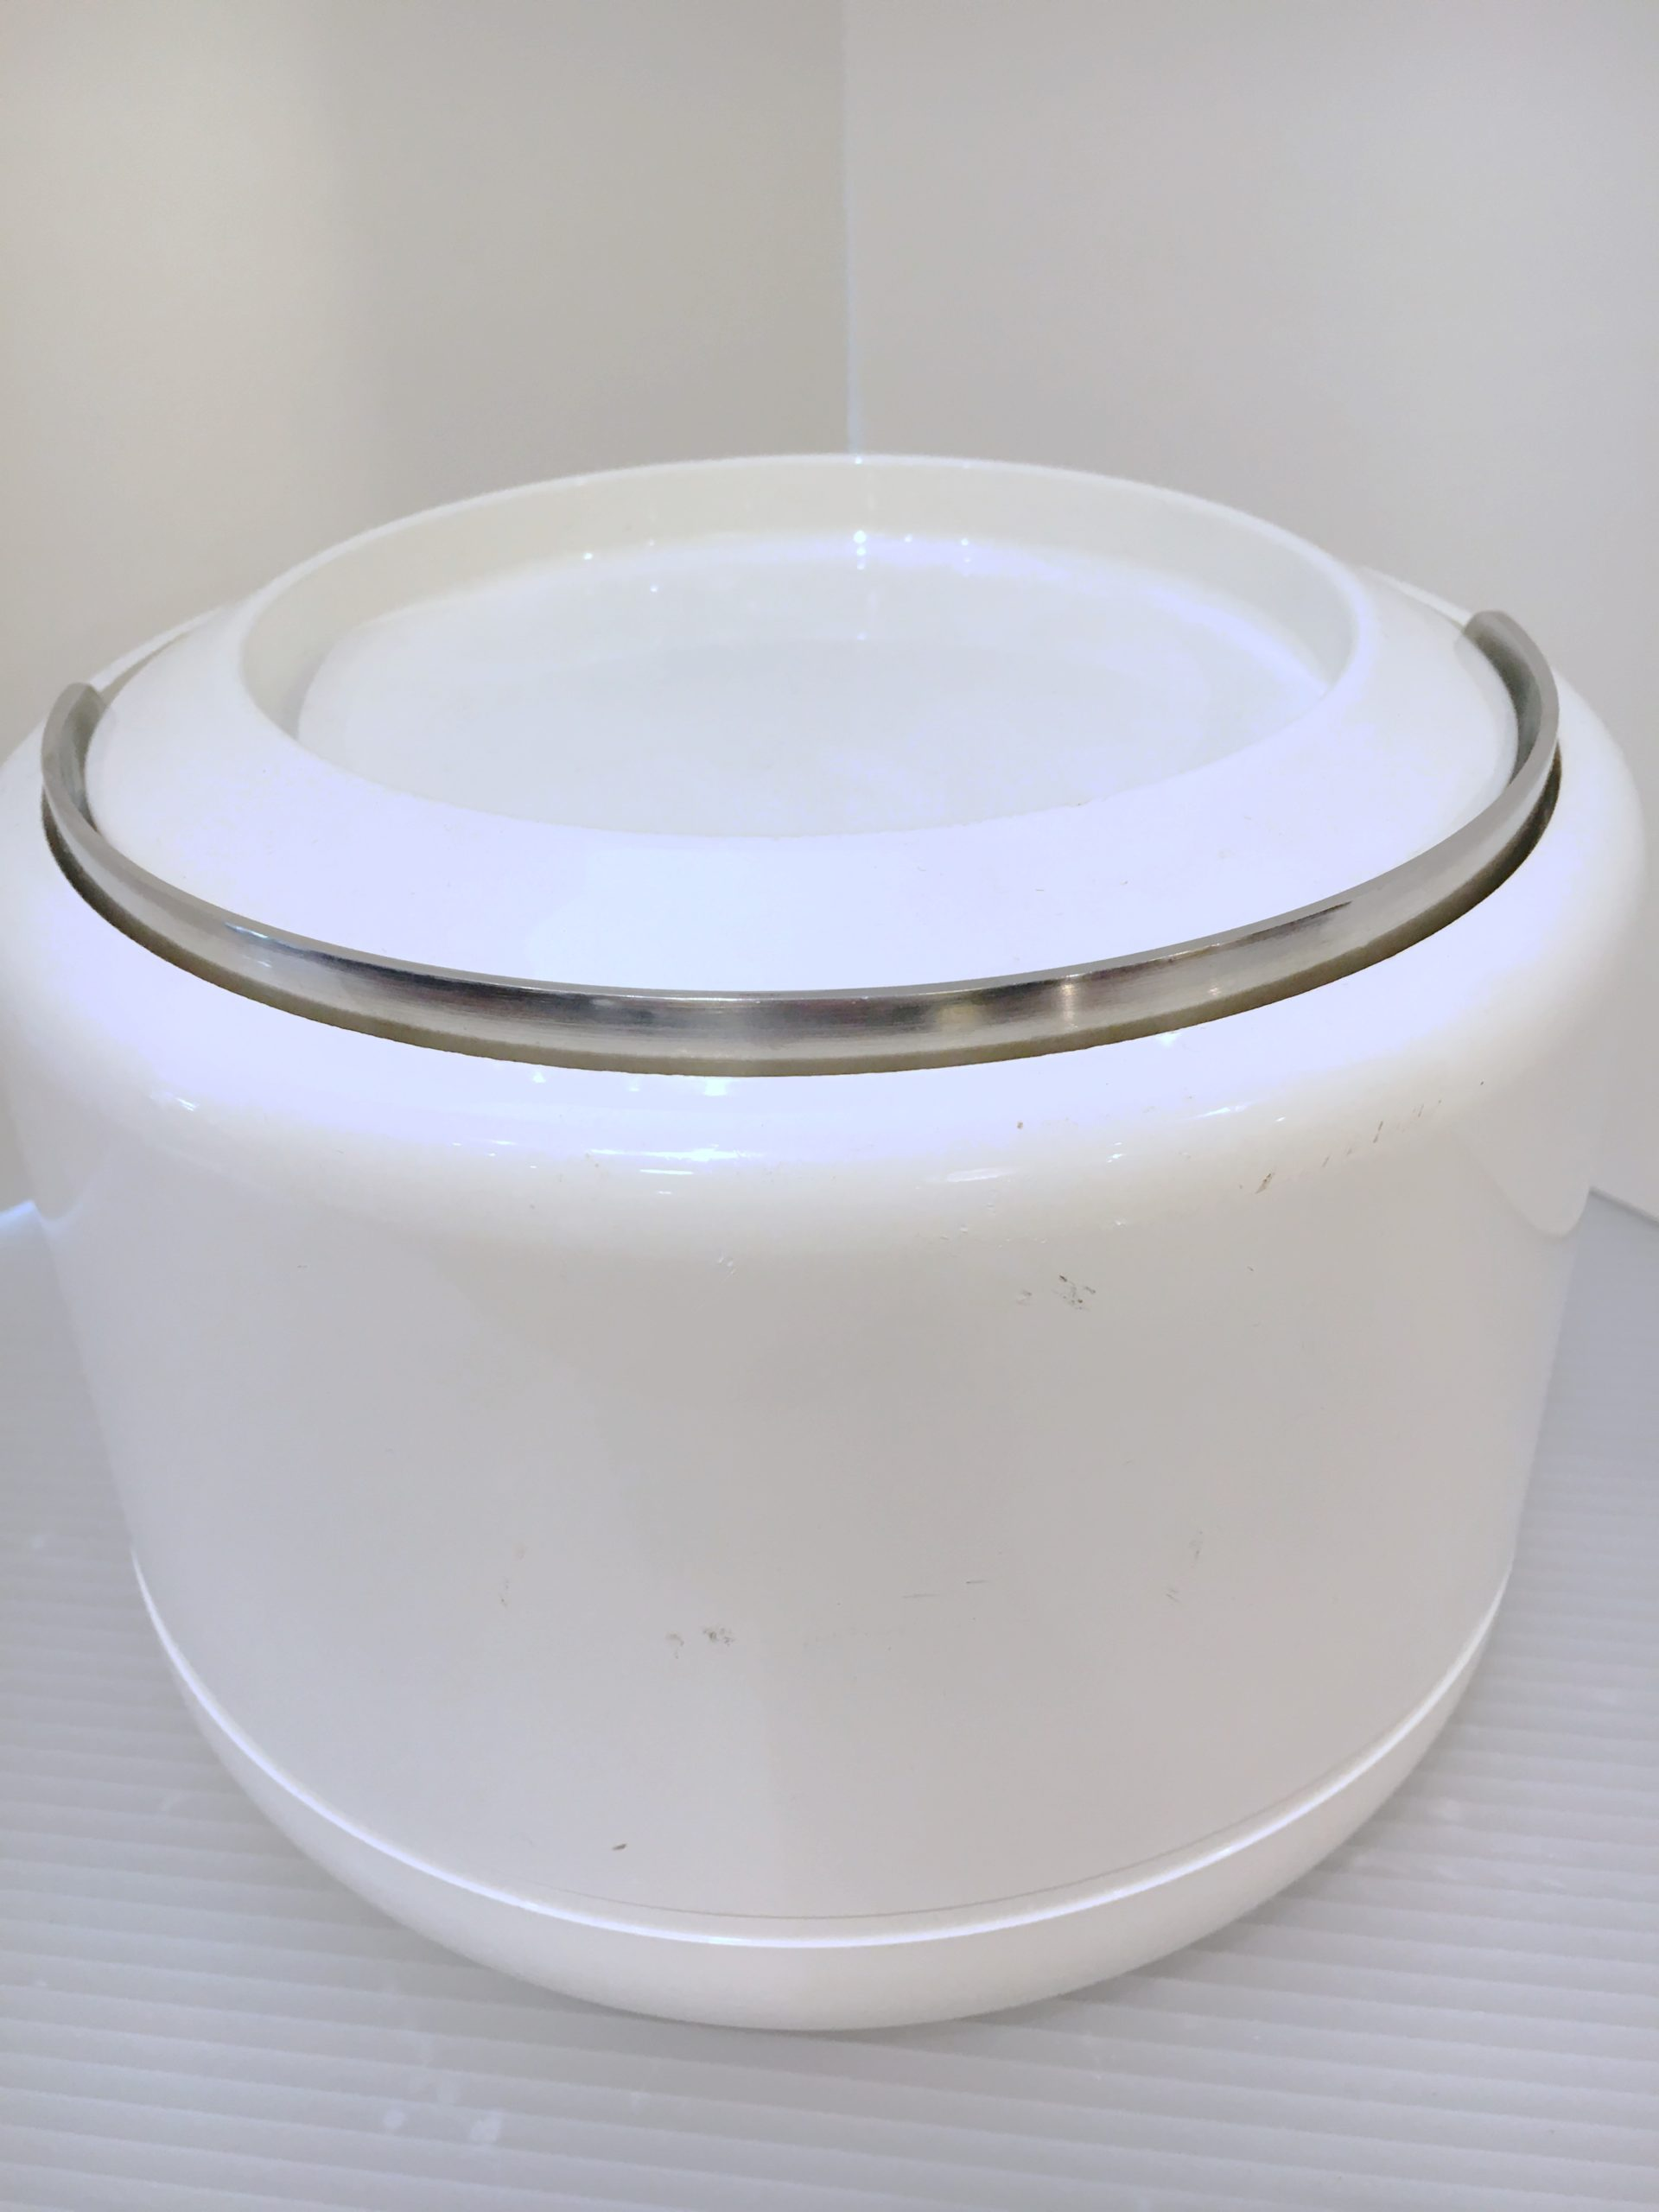 70s Mod White Acrylic Ice Bucket by Stelton, Denmark